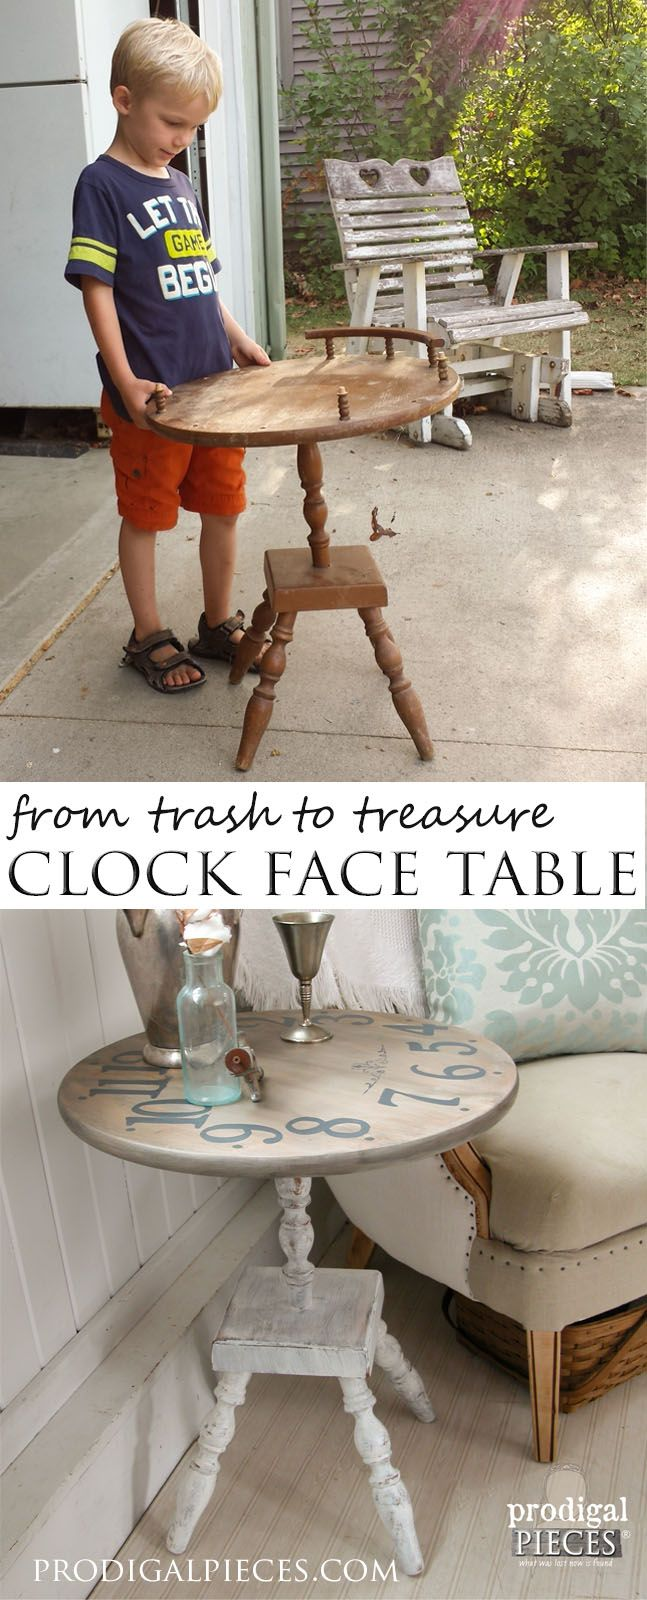 Beaten up table set out for trash turned it into a vintage style clock face table. A trash to treasure transformation by Prodigal Pieces www.prodigalpieces.com #prodigalpieces